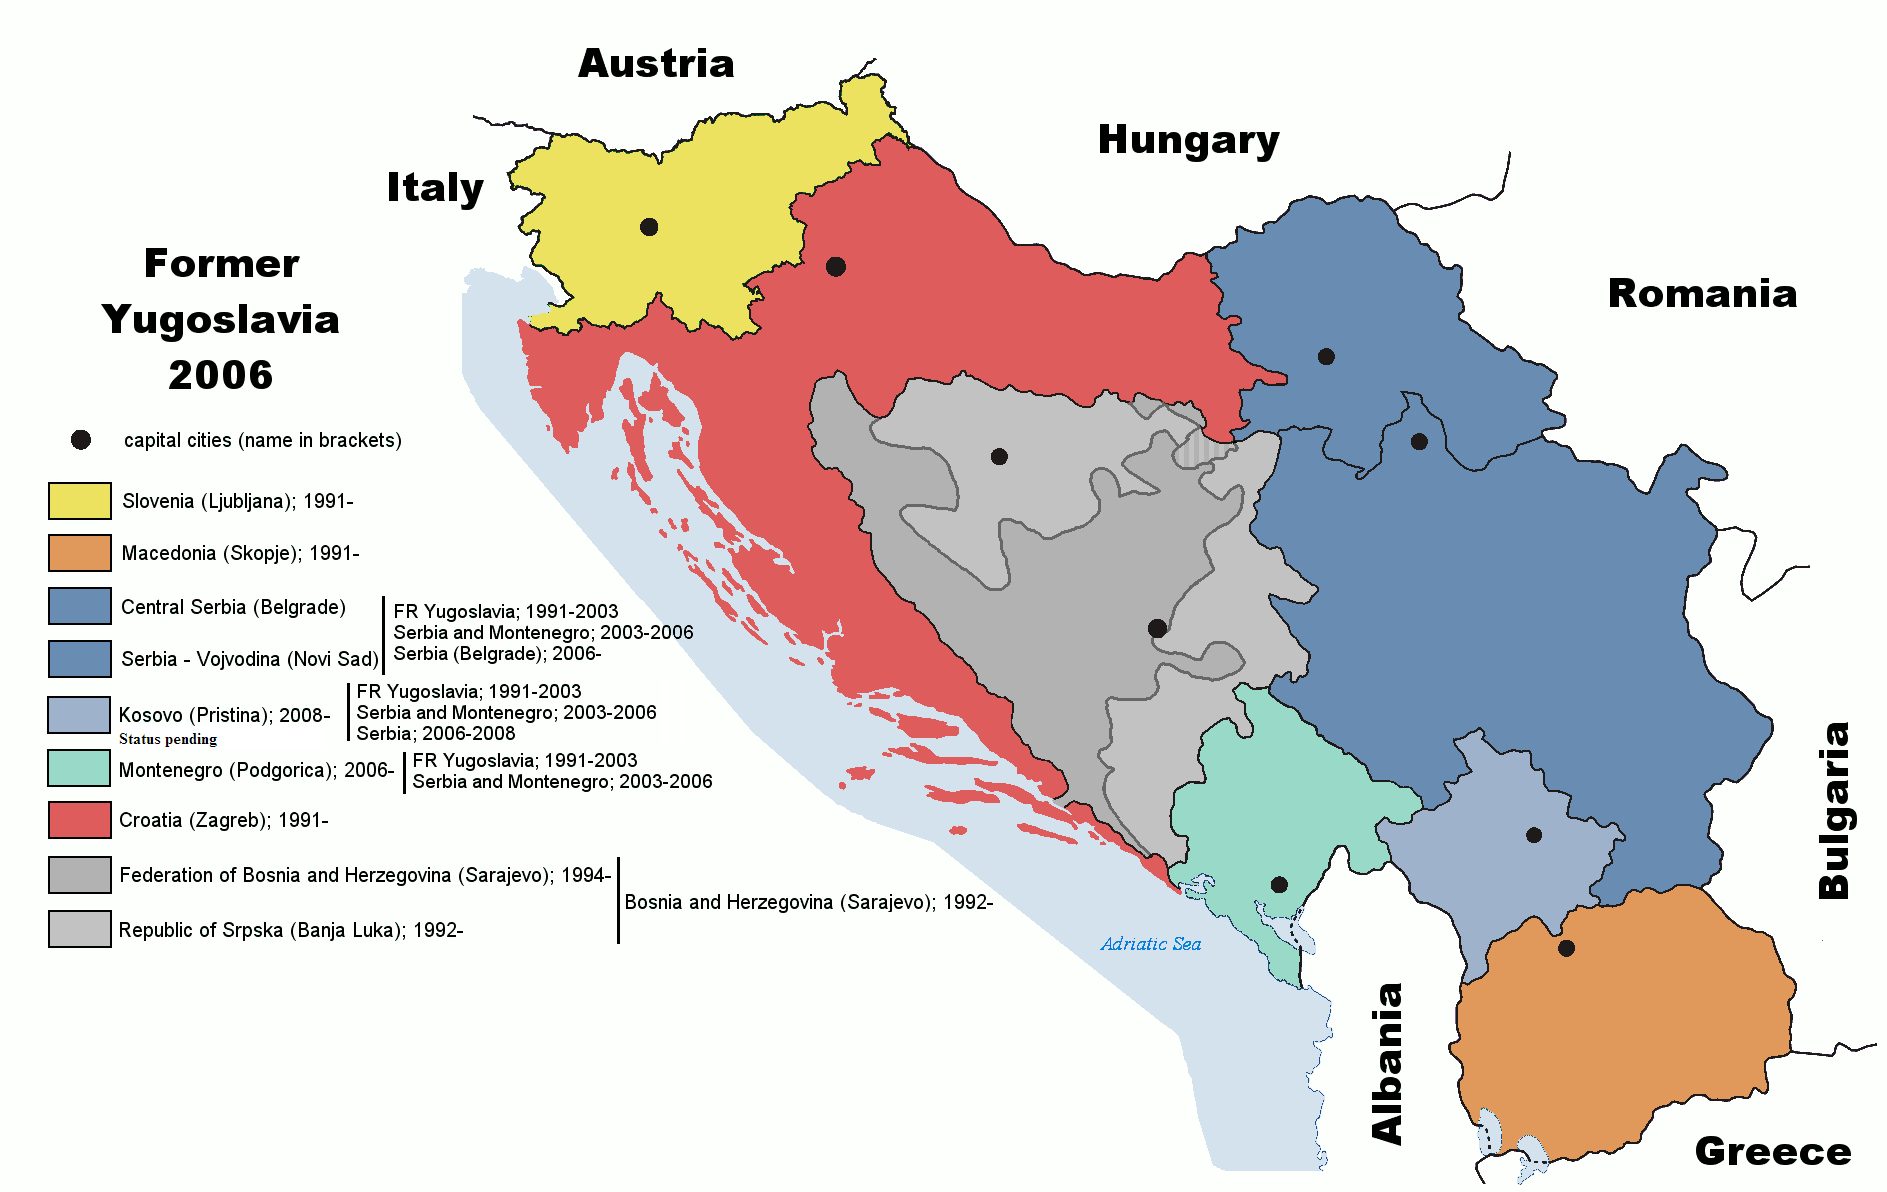 http://upload.wikimedia.org/wikipedia/commons/2/20/Former_Yugoslavia_2006.png